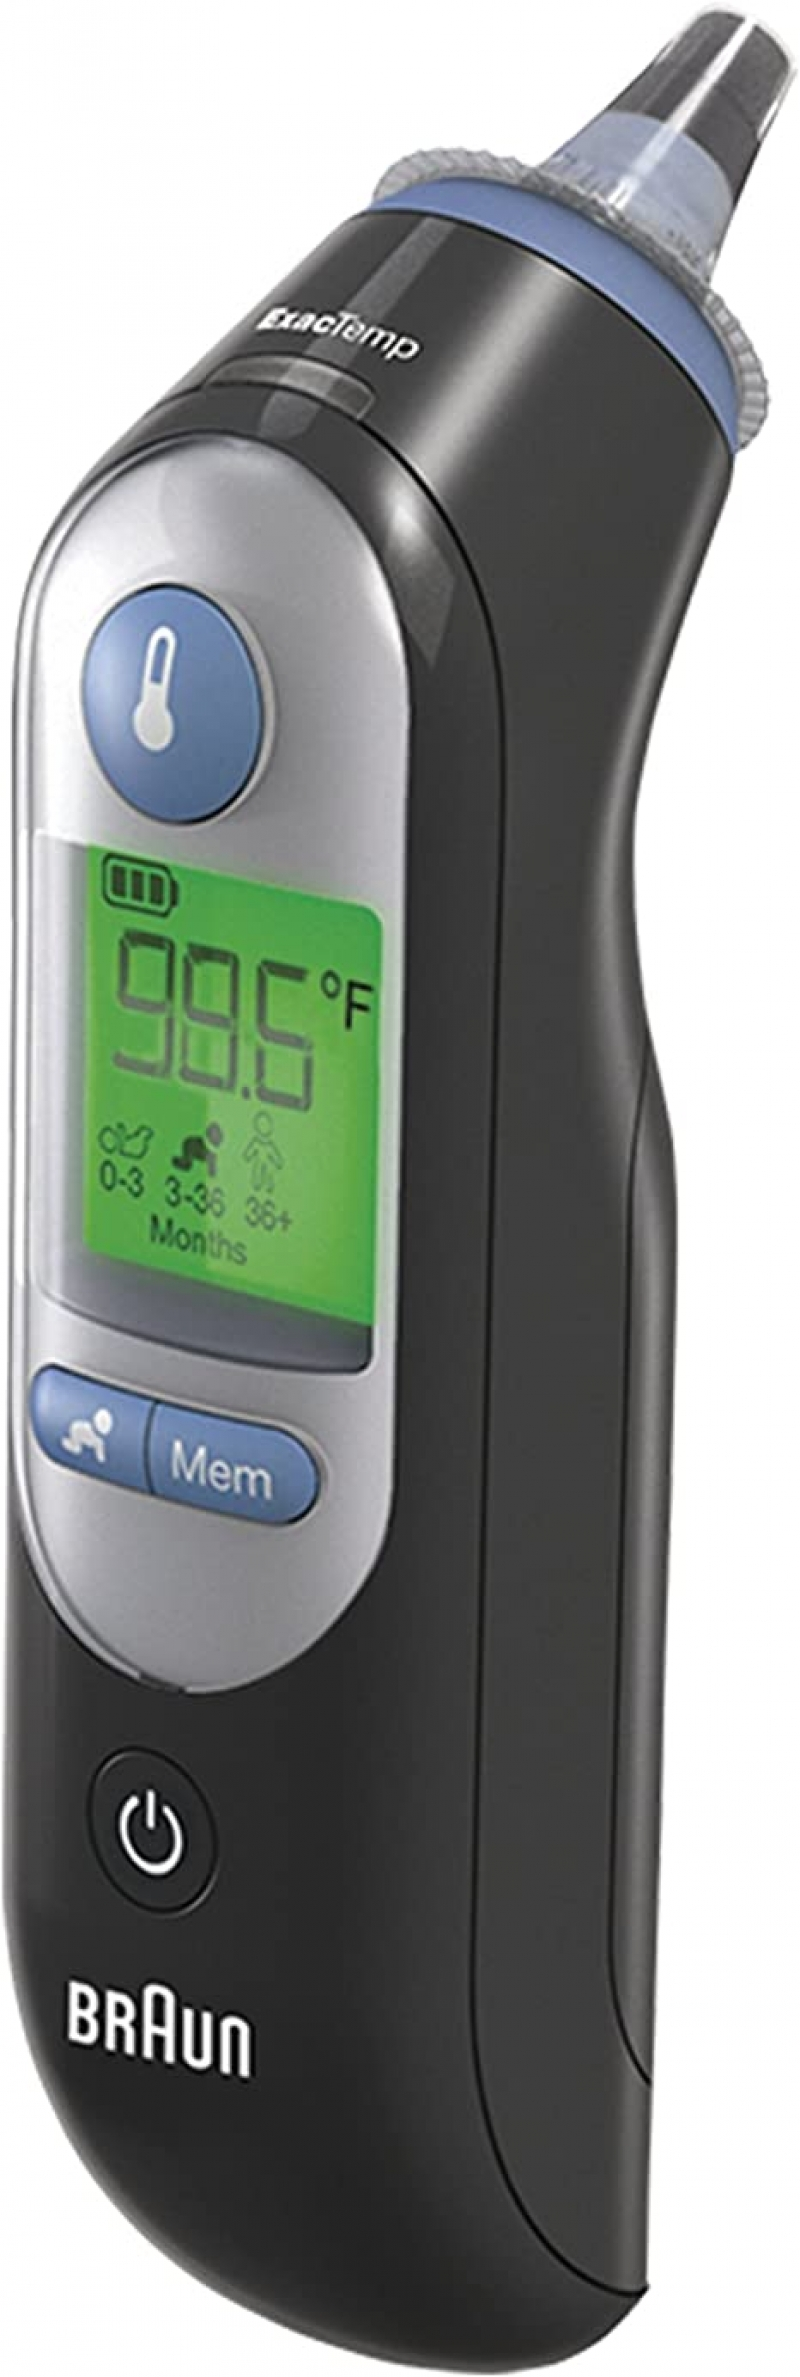 ihocon: Braun Thermoscan 7 Digital Ear Thermometer 耳溫計